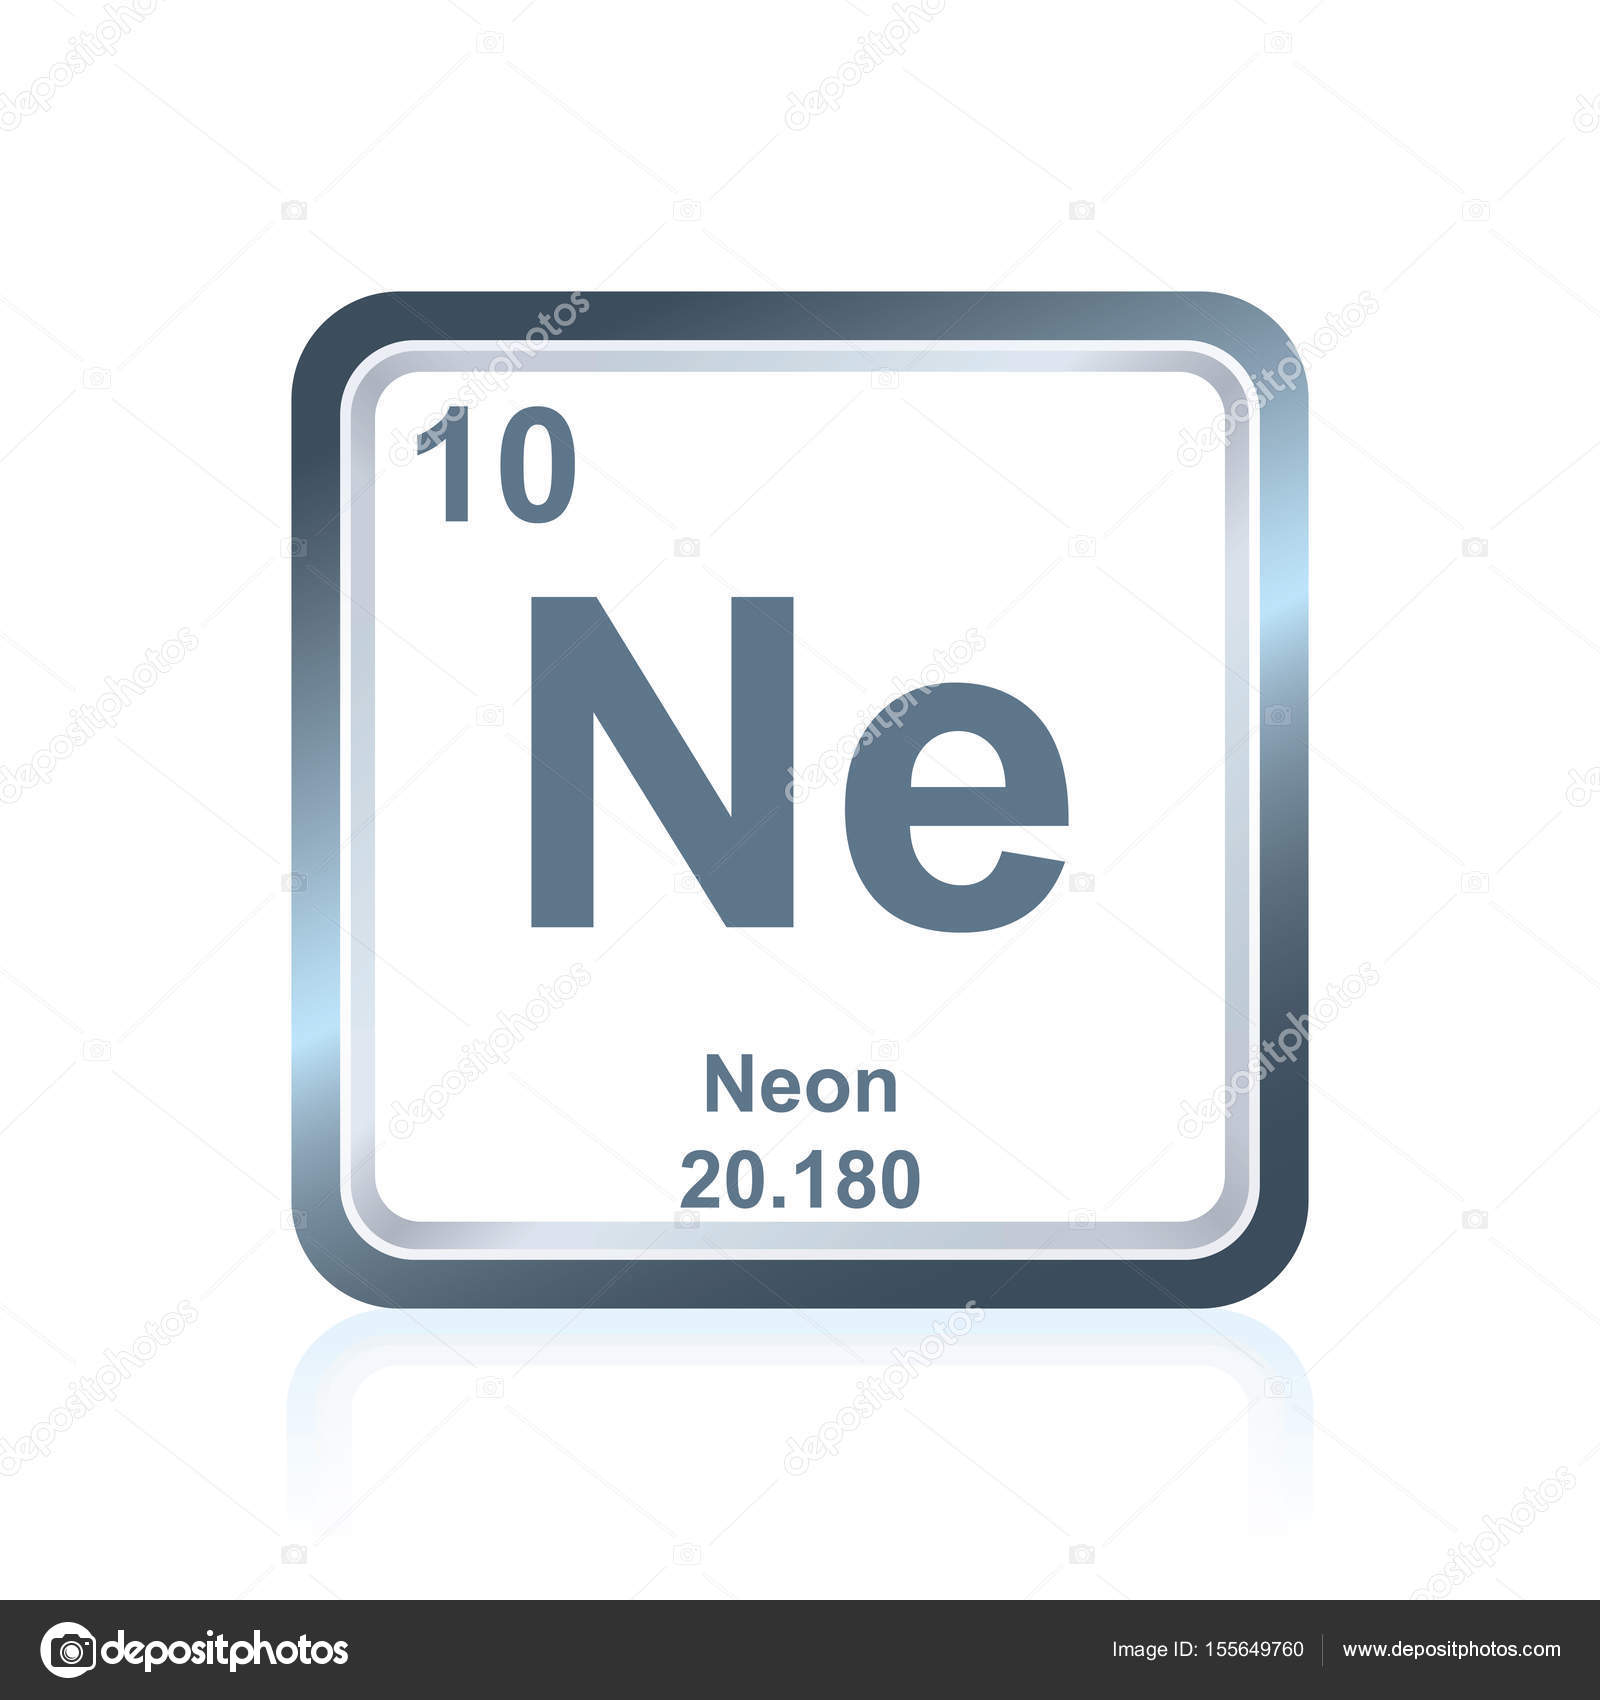 symbol of chemical element neon as seen on the periodic table of the elements including atomic number and atomic weight vector by noedelhap - Periodic Table Of Elements Neon